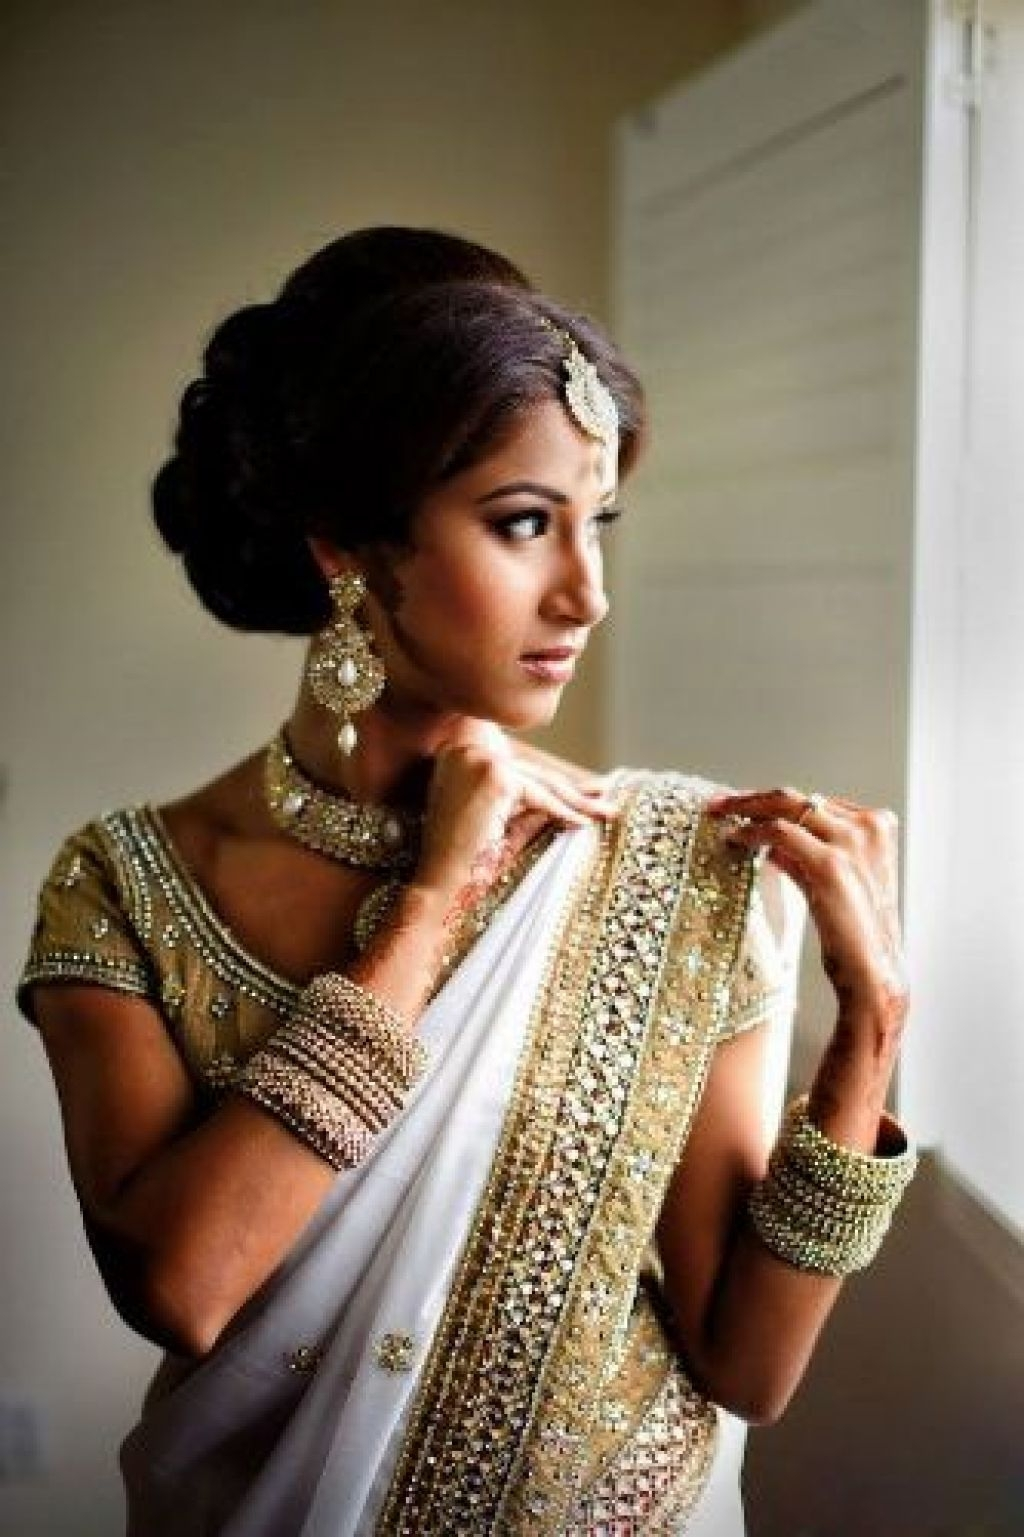 Indian Bridal Hairstyles For Curly Hair – Popular Long Hairstyle Idea With Regard To Indian Wedding Updo Hairstyles (View 14 of 15)